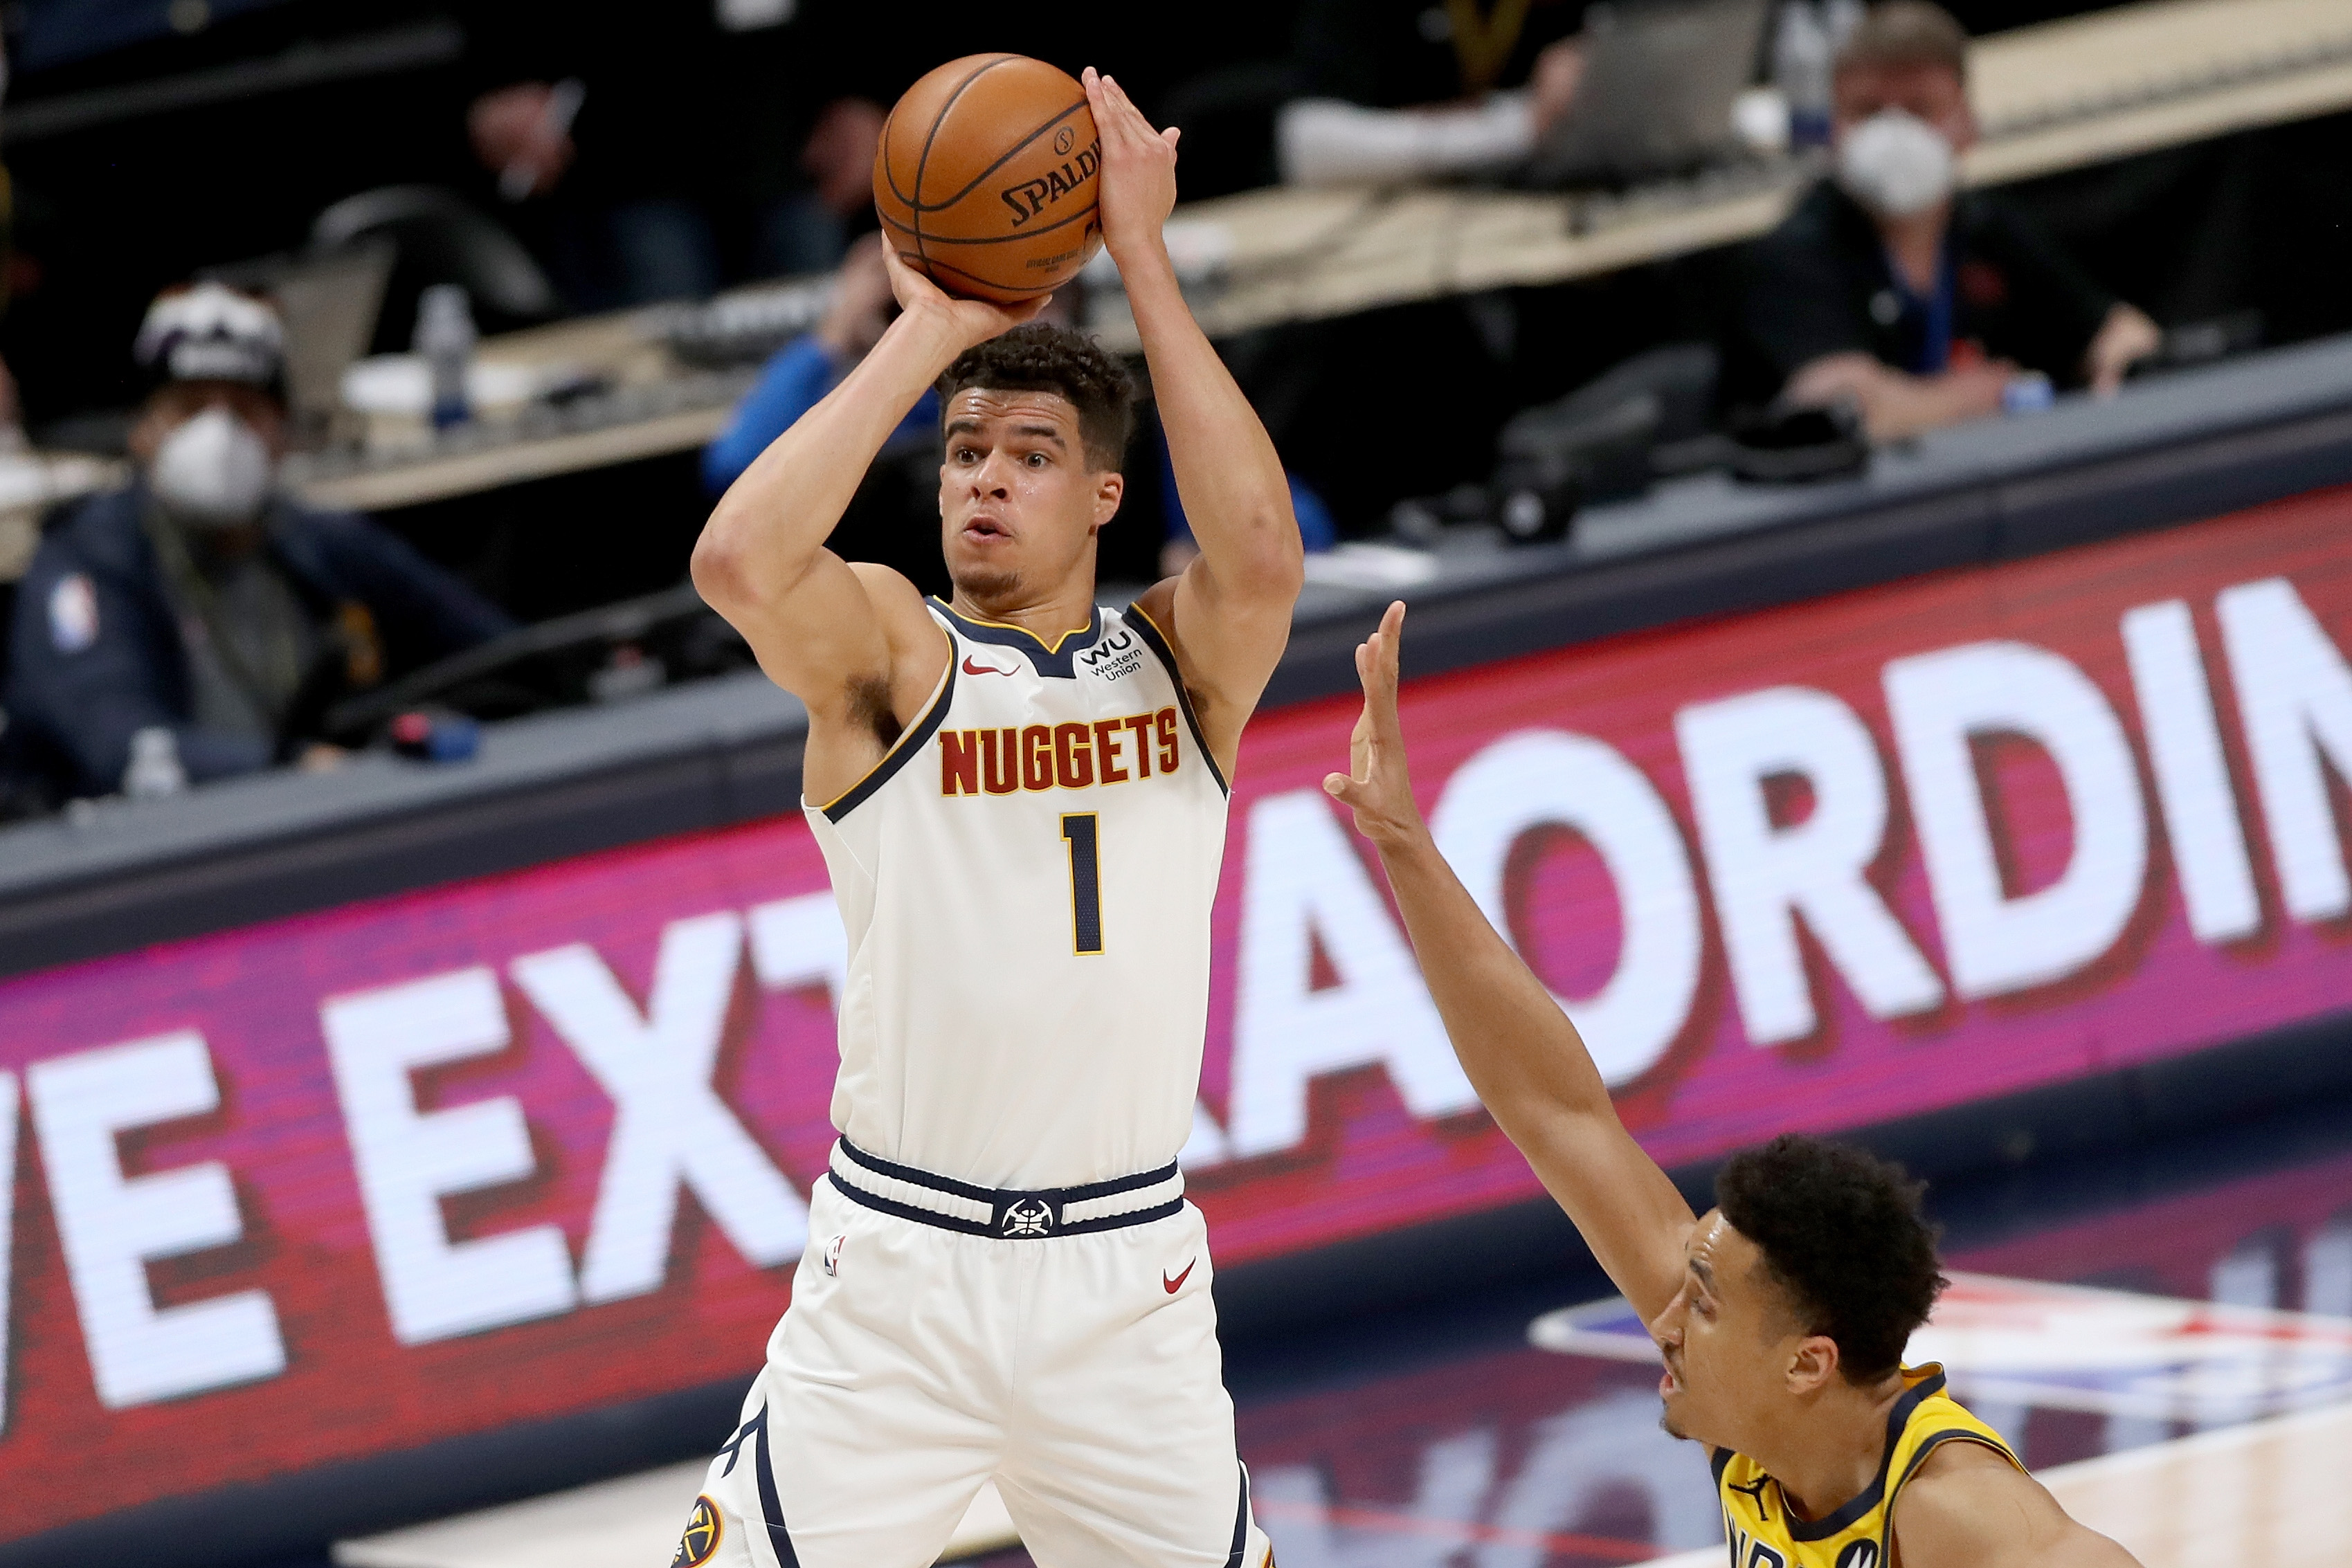 DENVER, COLORADO - MARCH 15: Michael Porter Jr. #1 of the Denver Nuggets puts up a shot over Malcolm Brogdon #7 of the Indiana Pacers in the second period at Ball Arena on March 15, 2021 in Denver, Colorado. NOTE TO USER: User expressly acknowledges and agrees that, by downloading and or using this photograph, User is consenting to the terms and conditions of the Getty Images License Agreement.